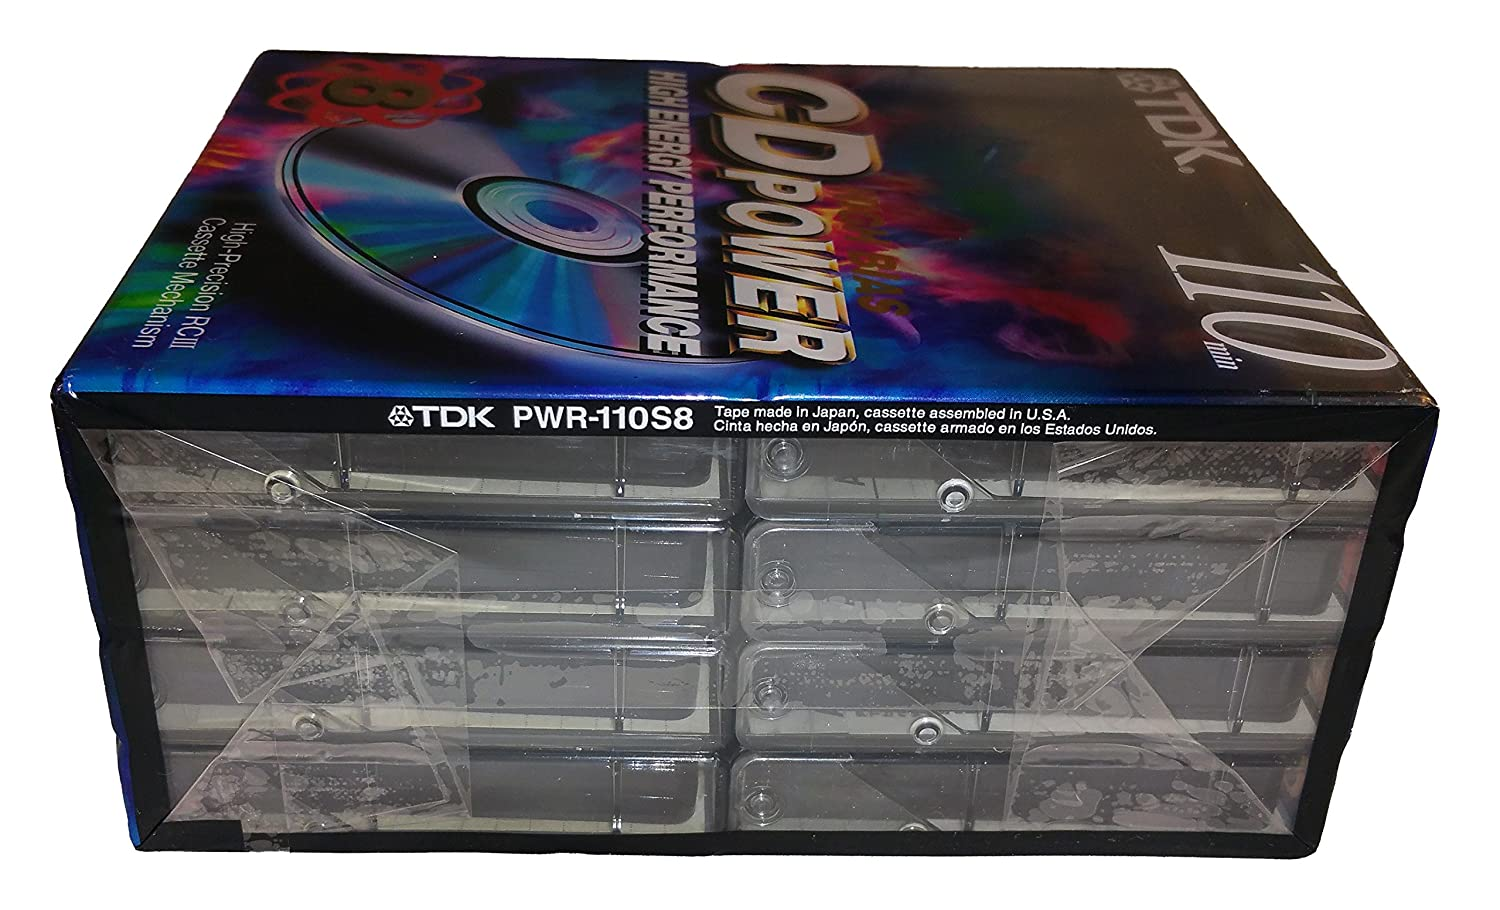 Amazon.com: TDK CD Power 110 High Bias High Energy Performance Blank Audio Cassette Tapes - 8 Pack: Home Audio & Theater